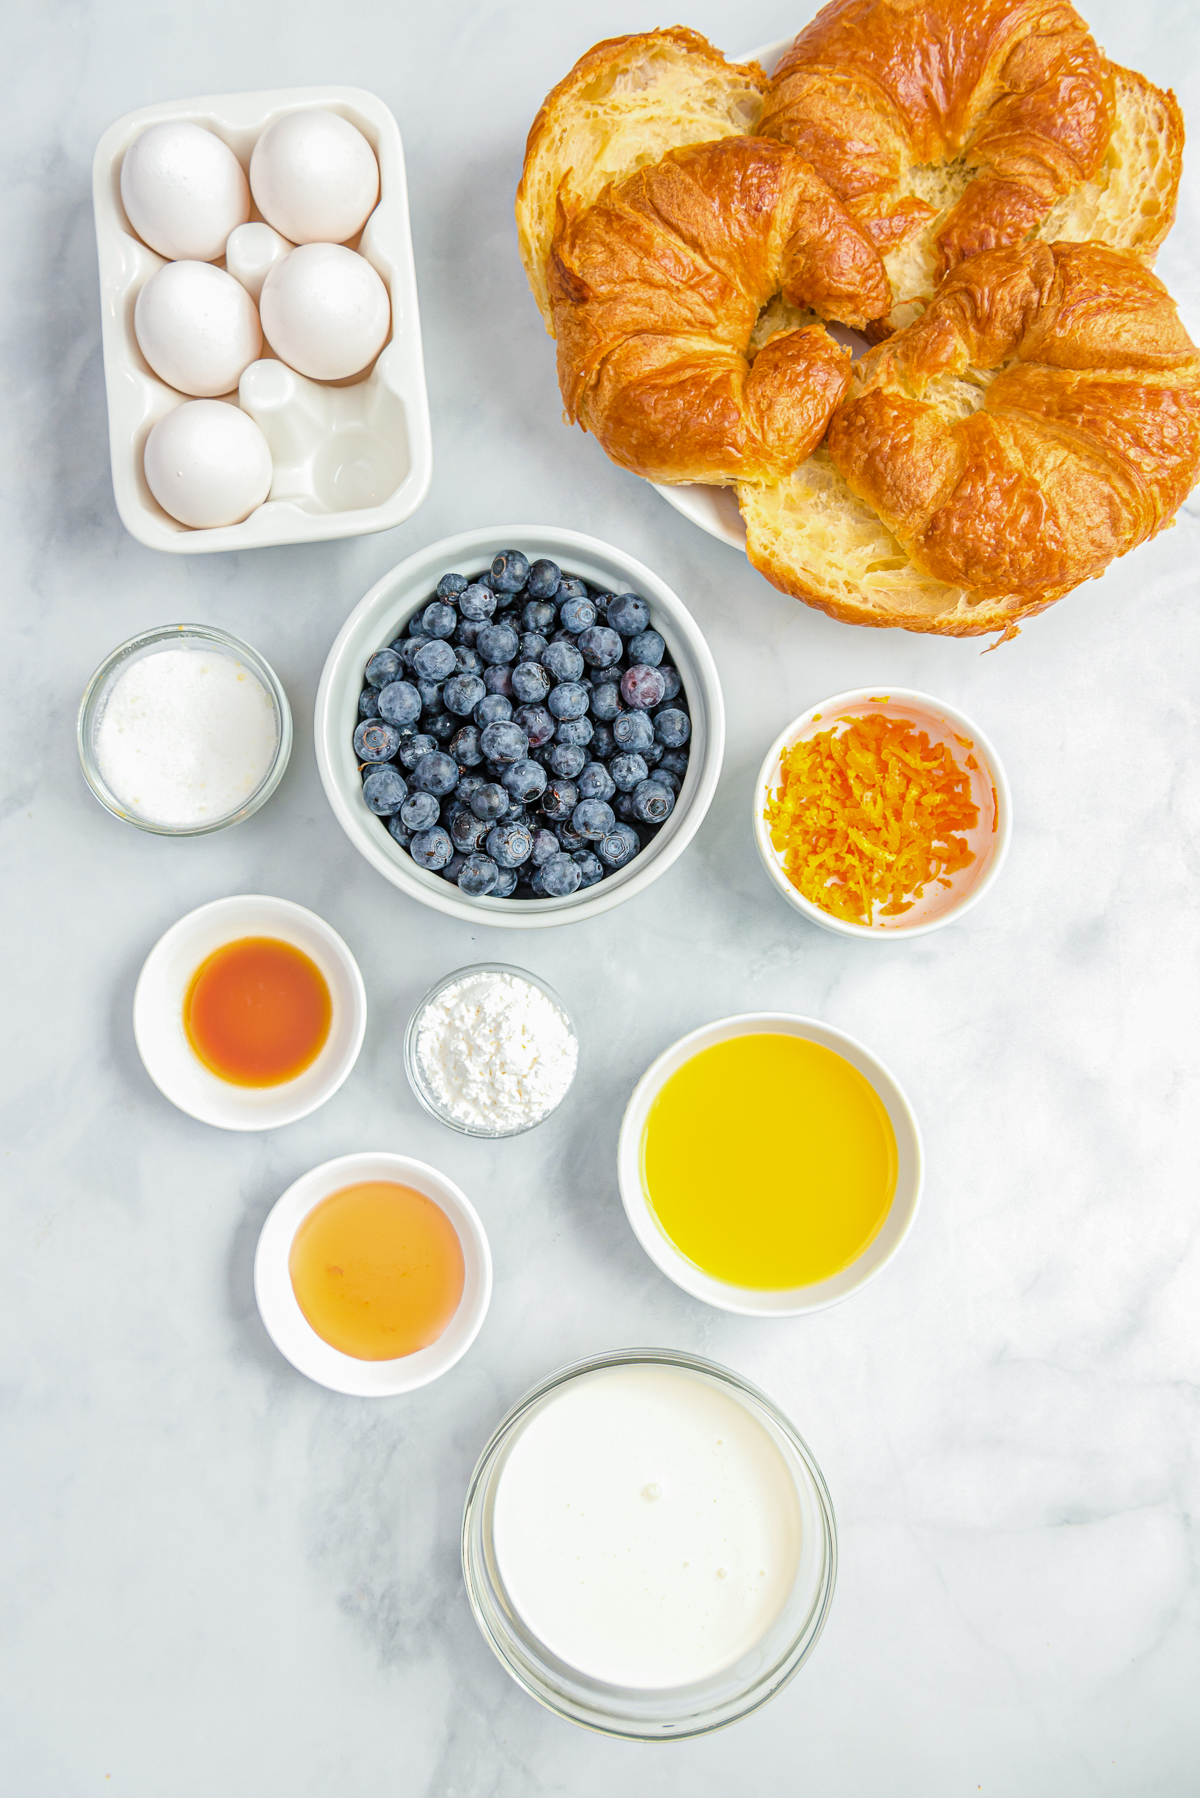 Ingredients needed to make Blueberry Croissant French Toast